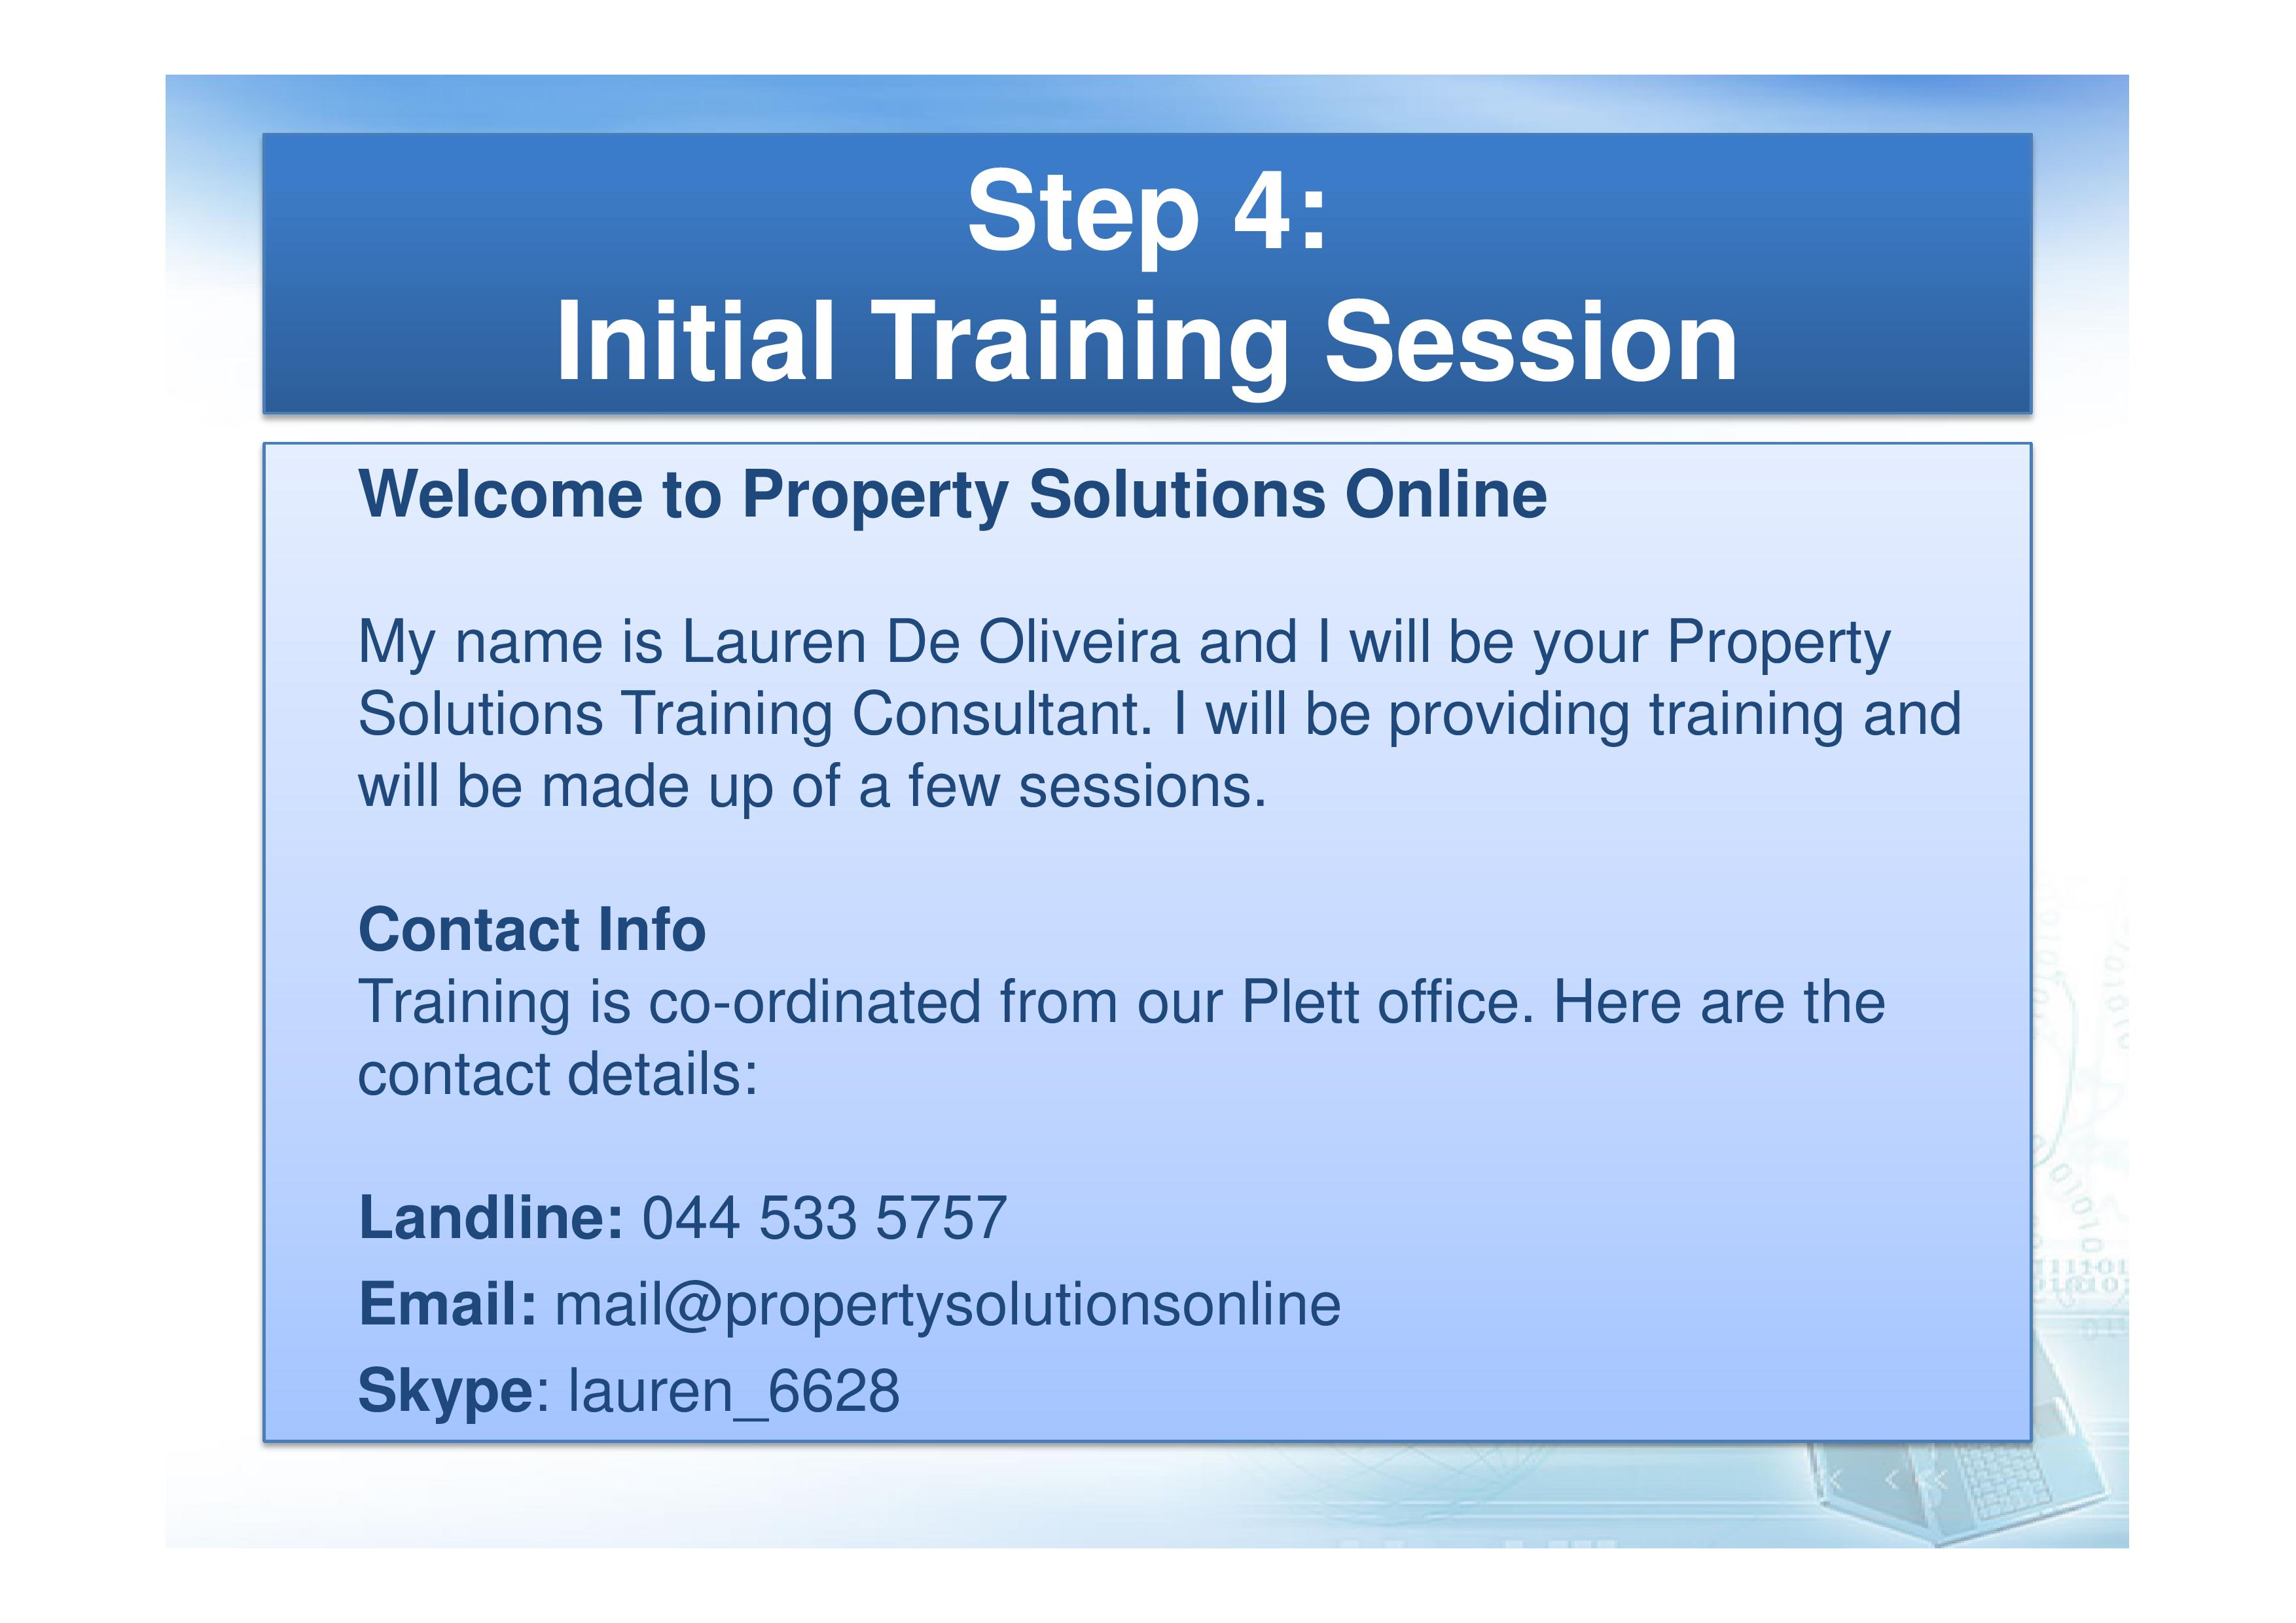 Welcome to Property Solutions Online.